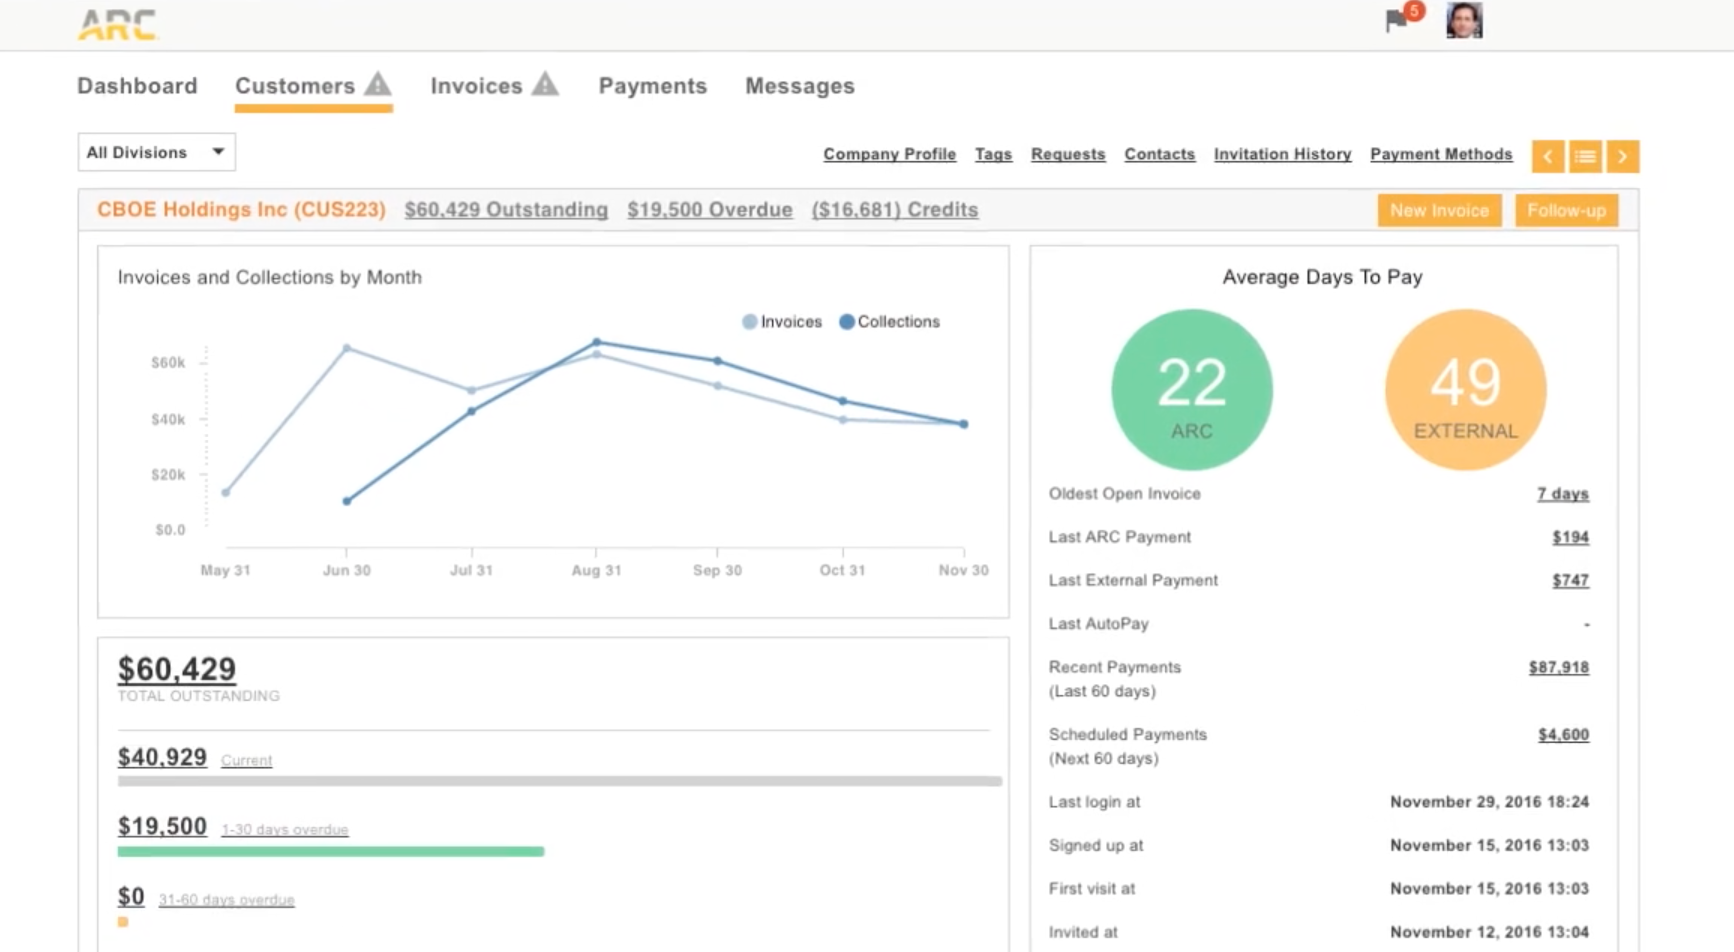 Gain real-time insight from the dashboard, which displays key metrics